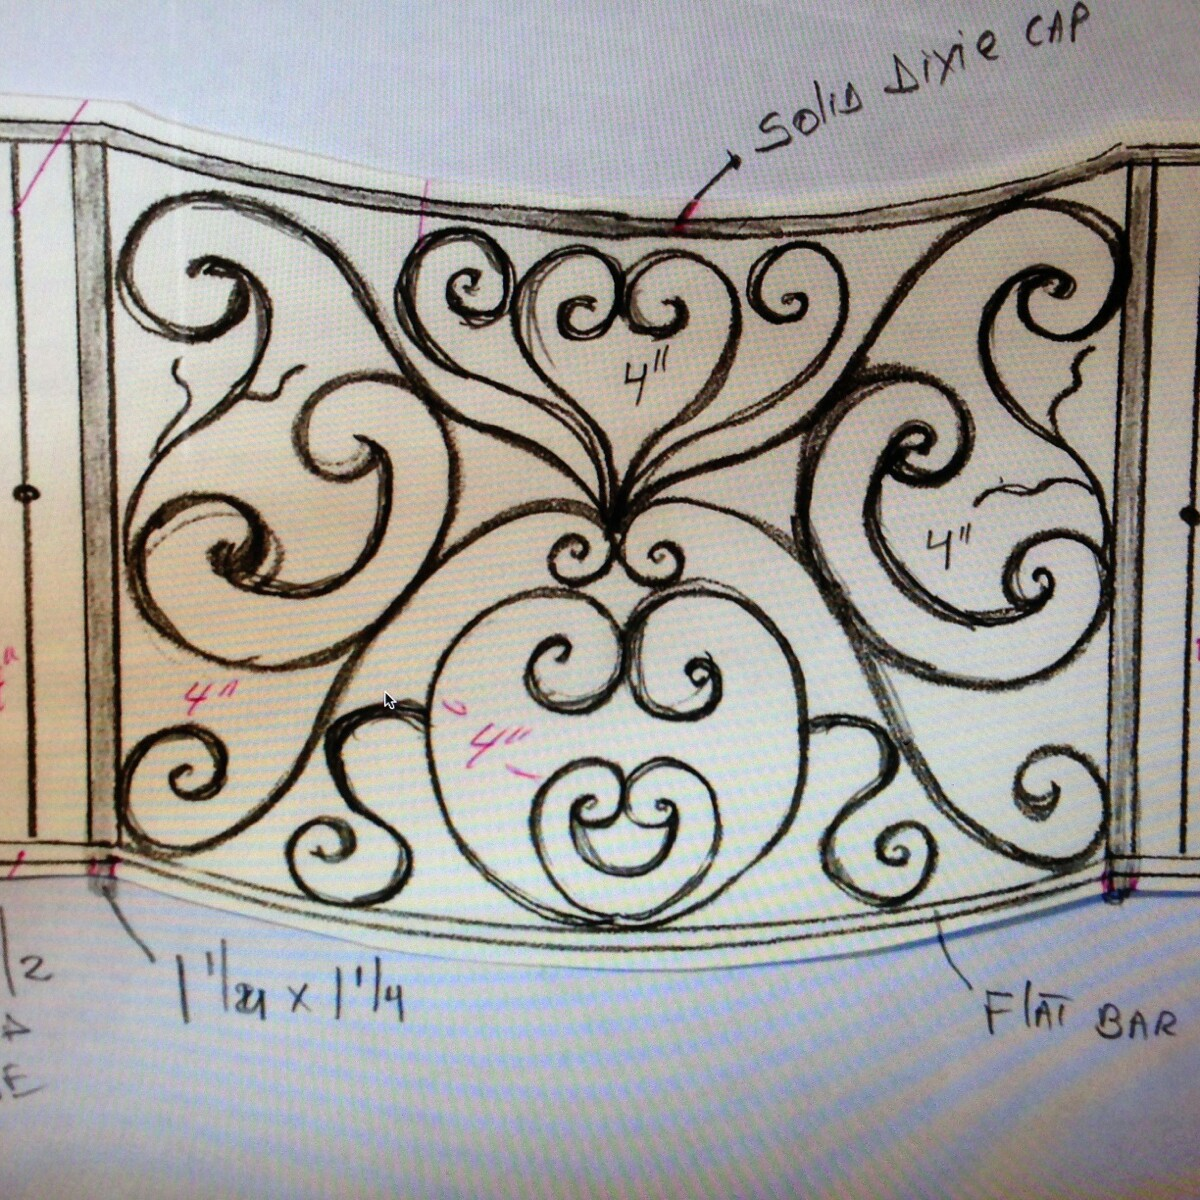 1 QUICK ALUMINUM & IRON WORK image 70